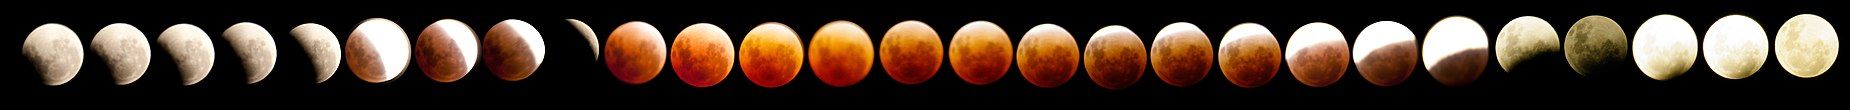 a series of 27 images of the moon during the eclipse